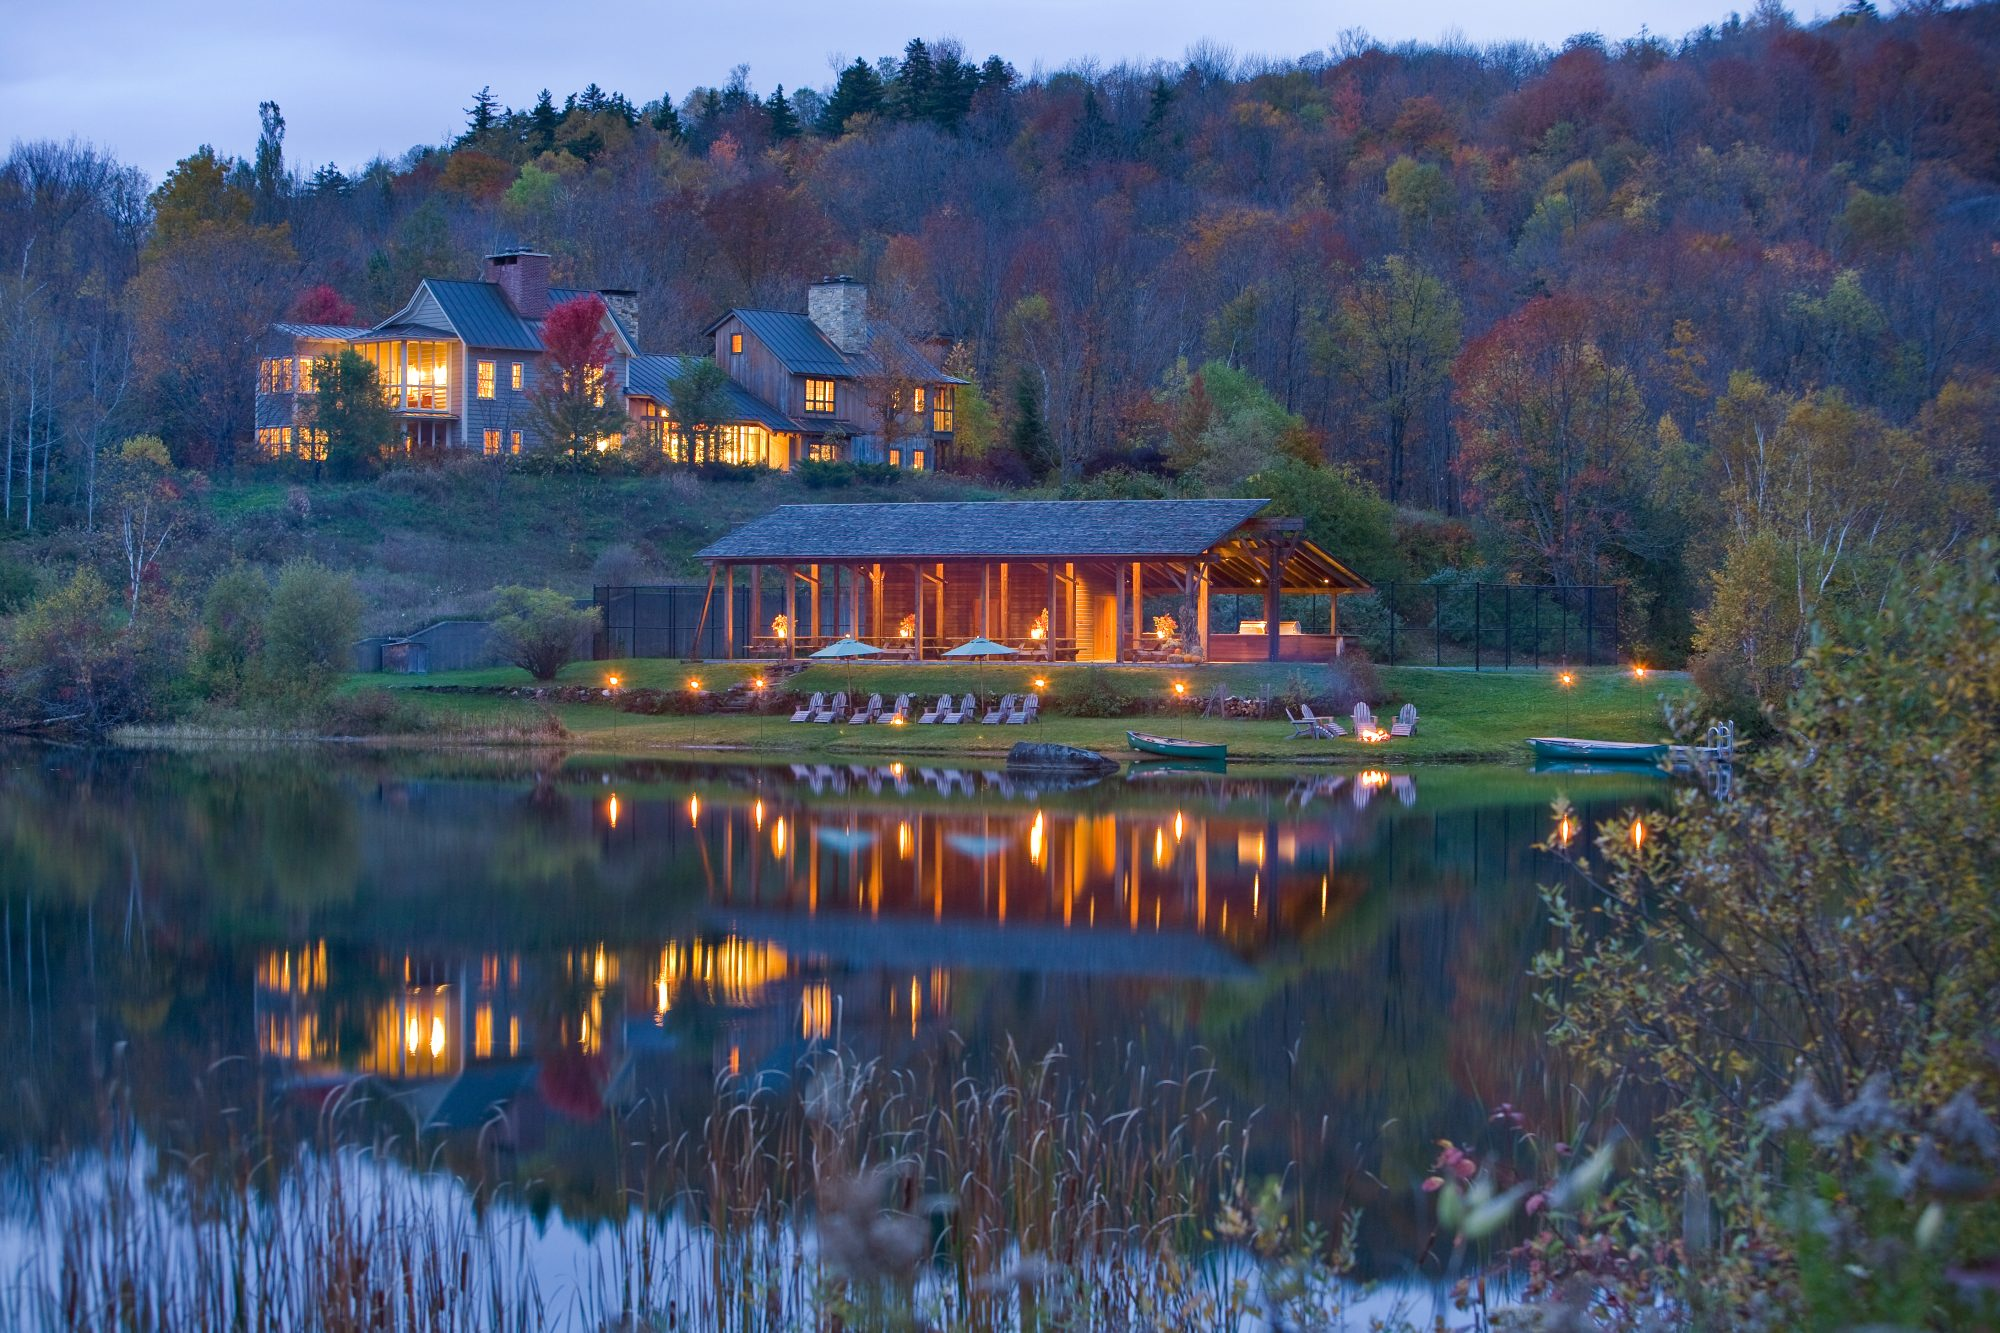 scenic dusk view of twin farms vermont